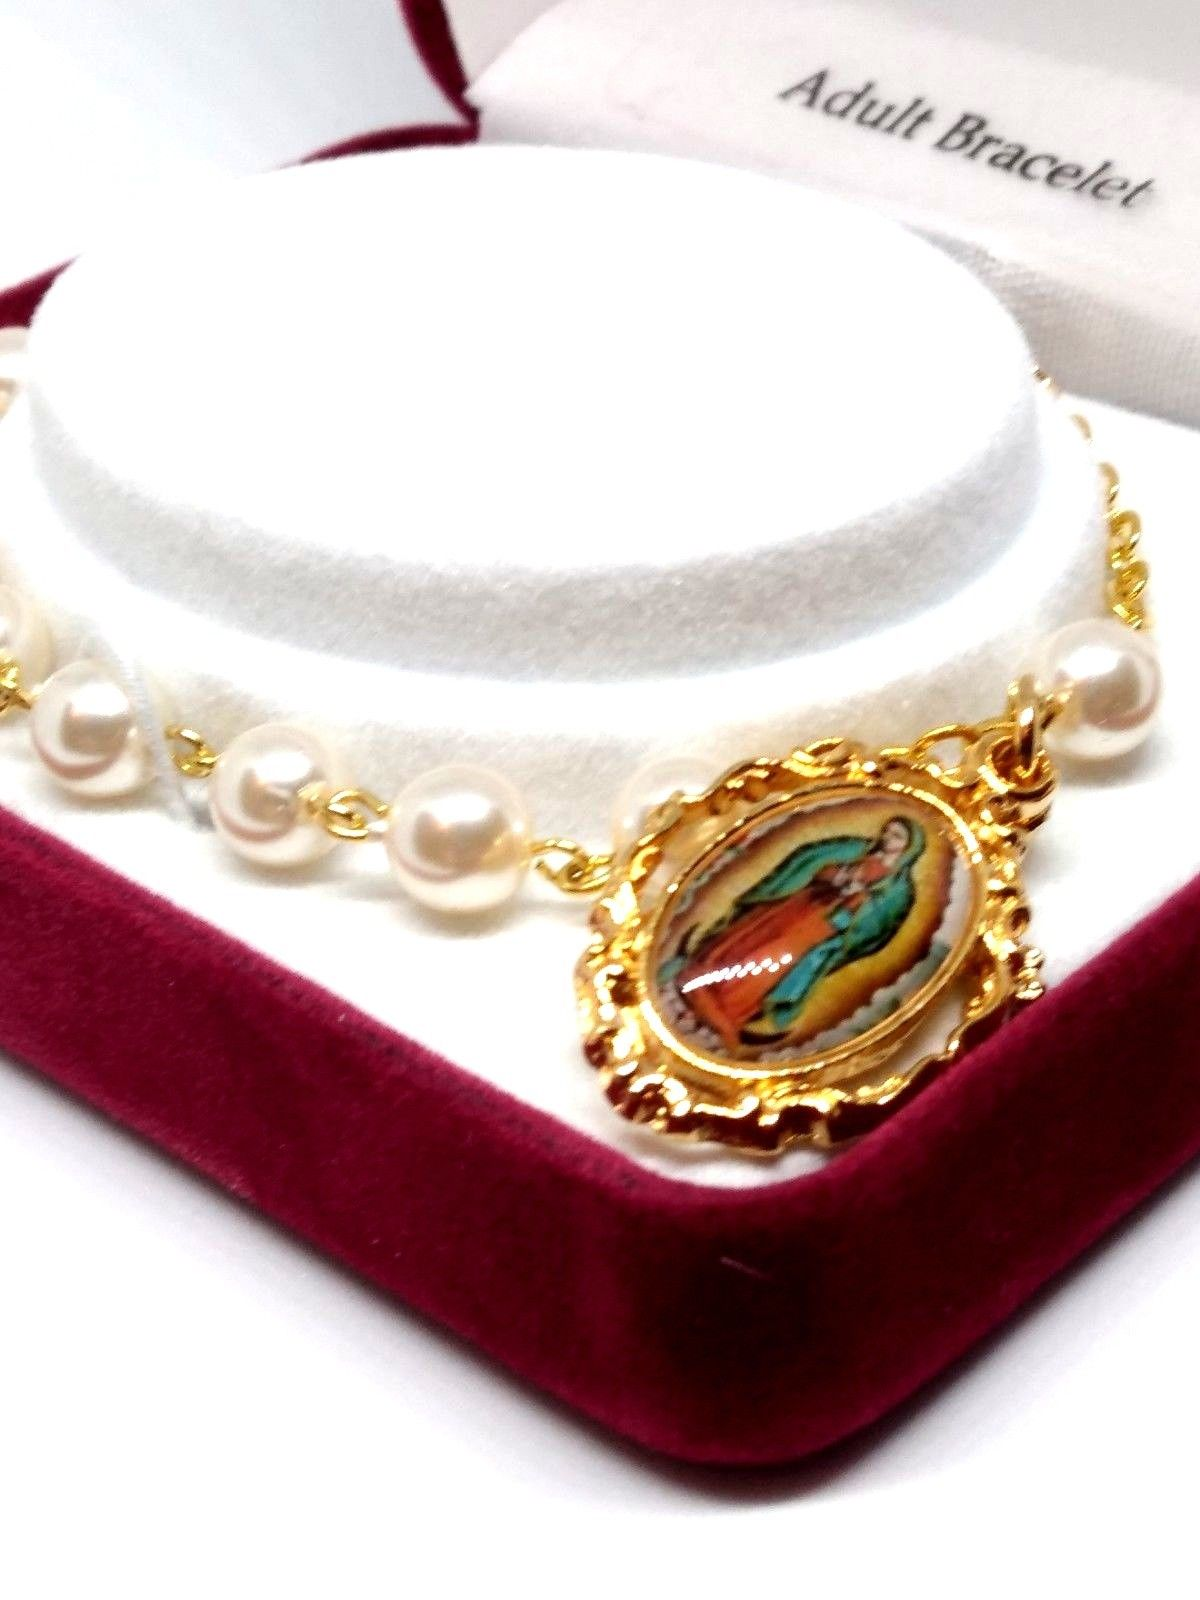 Pearl Our Lady of Guadalupe Bracelet with Medal and Cross Wonderful Quality